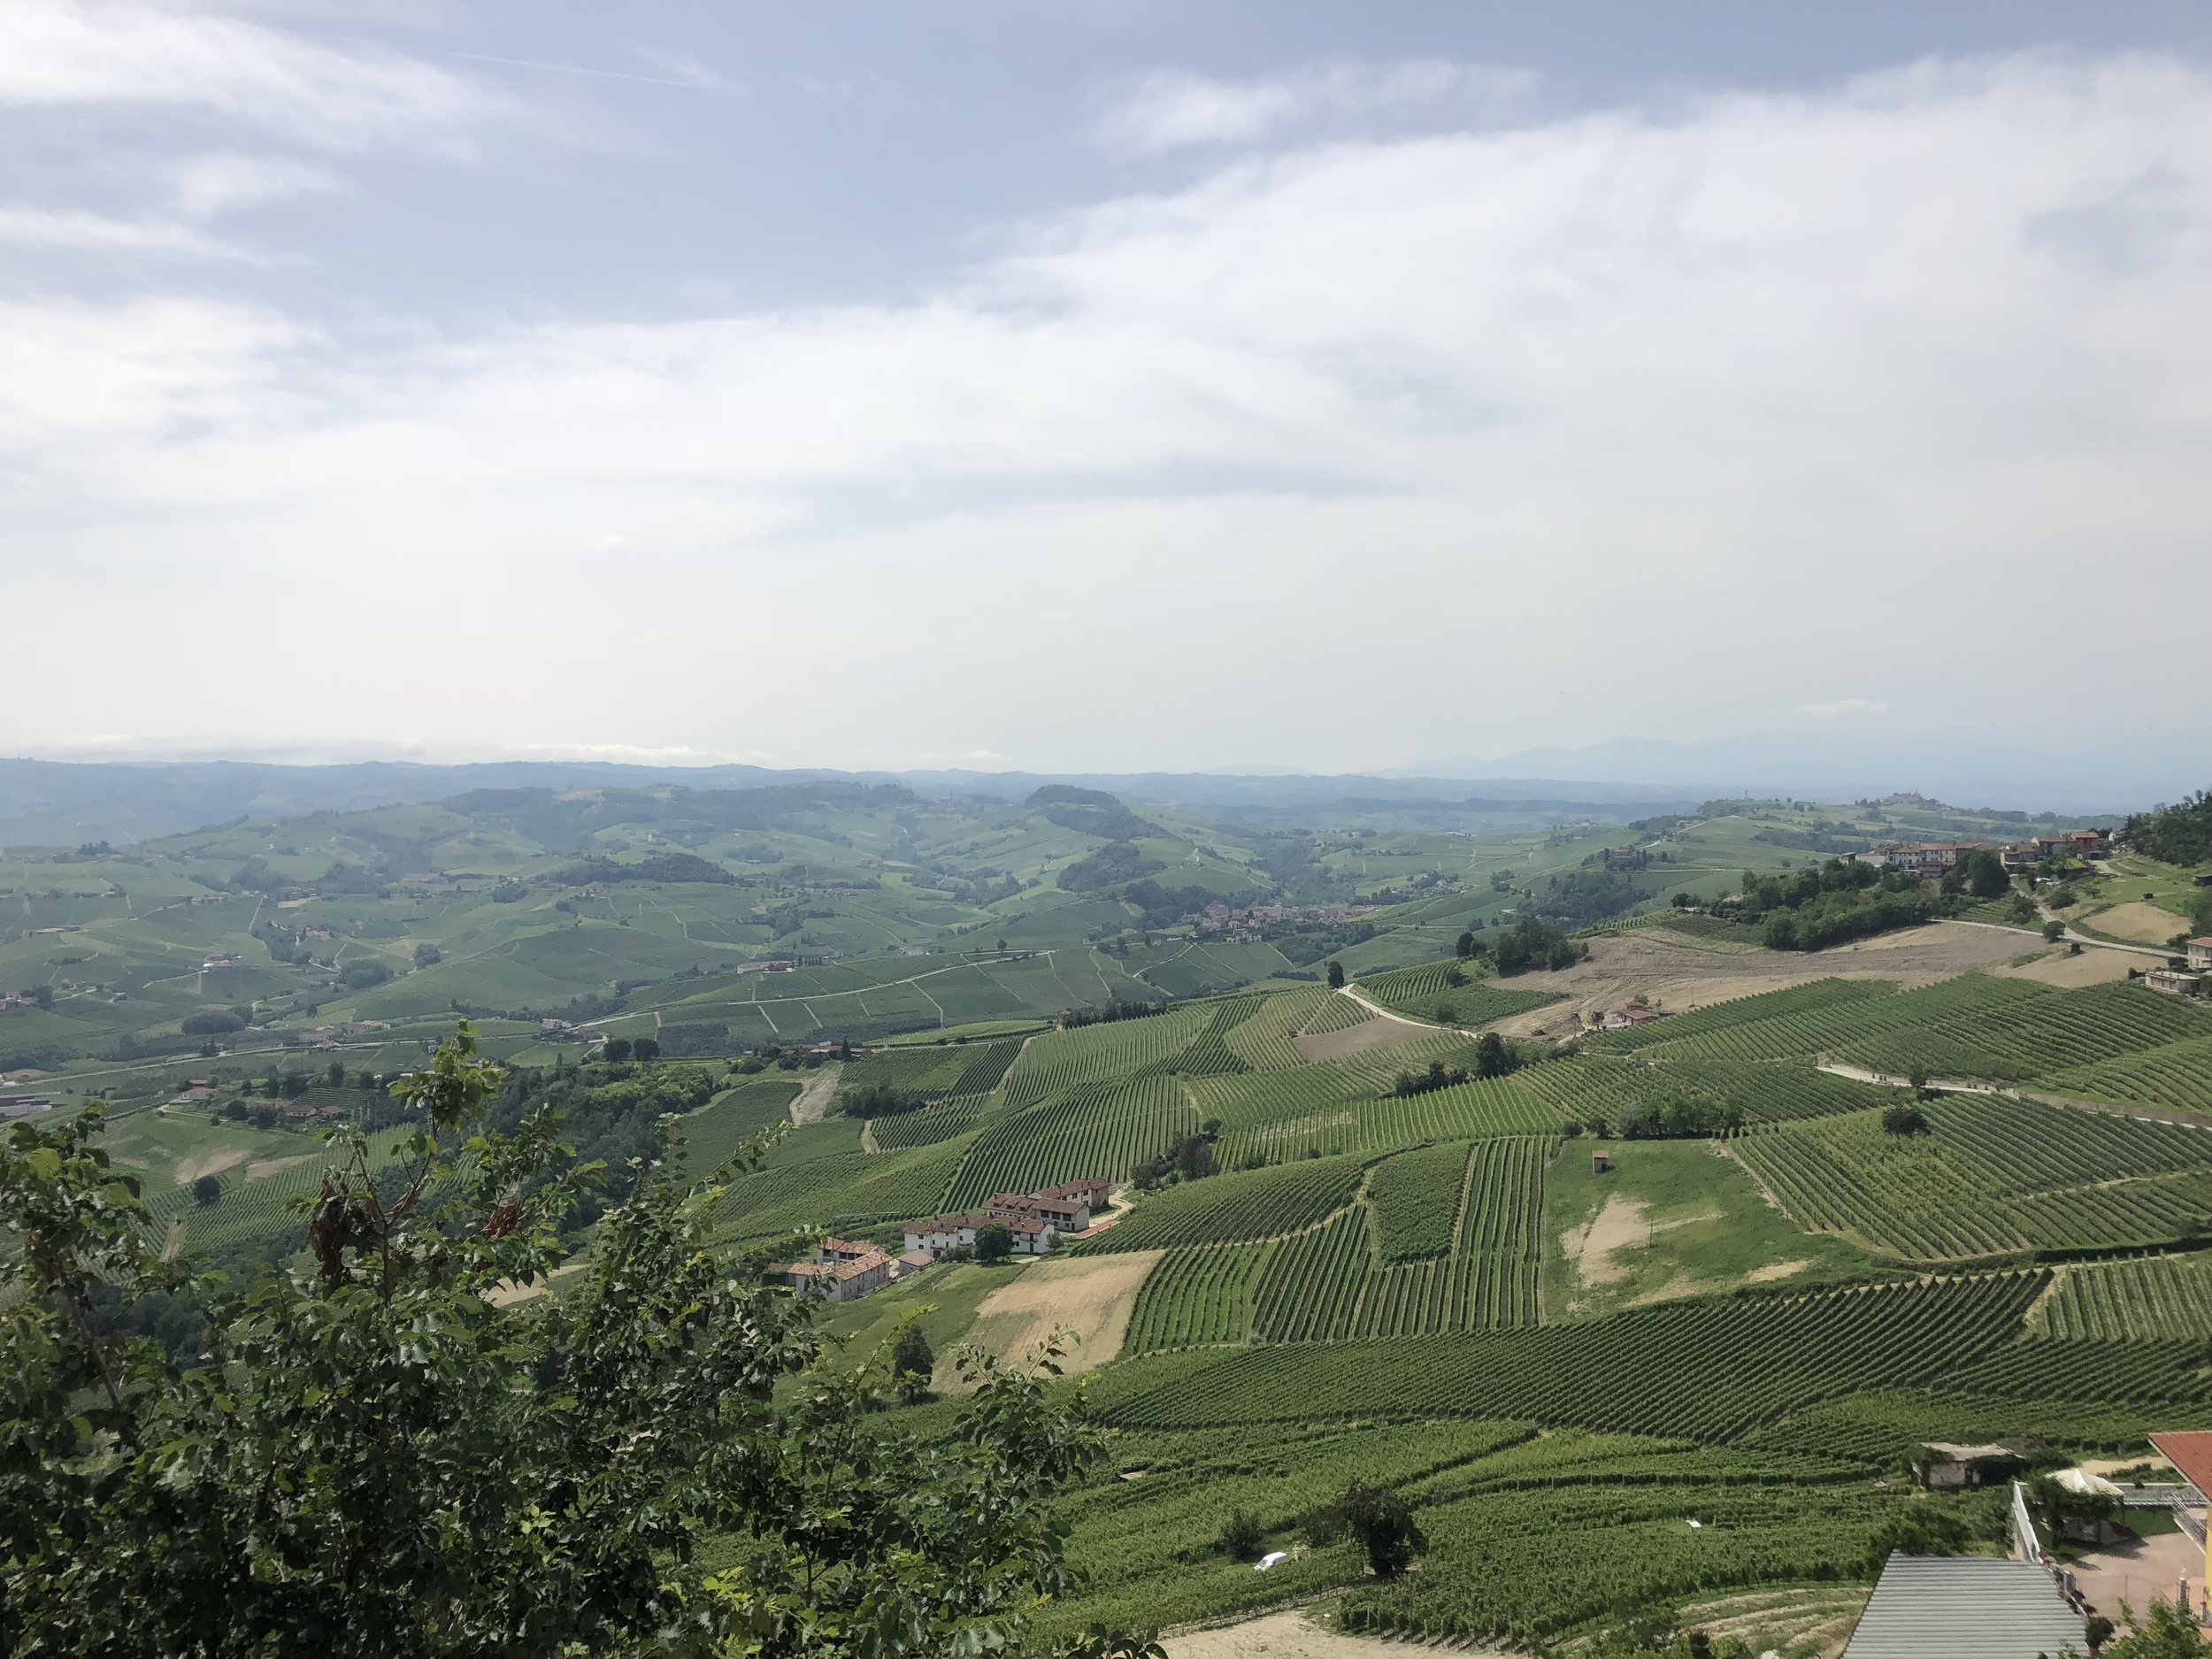 On our full day there, we took a road trip through the surrounding towns. Our first stop was Barolo, know for its wine. Dan was determined to find some wines to ship home so we were in the right region. Barolo is a small town, so it didn't take us too long to stroll through.